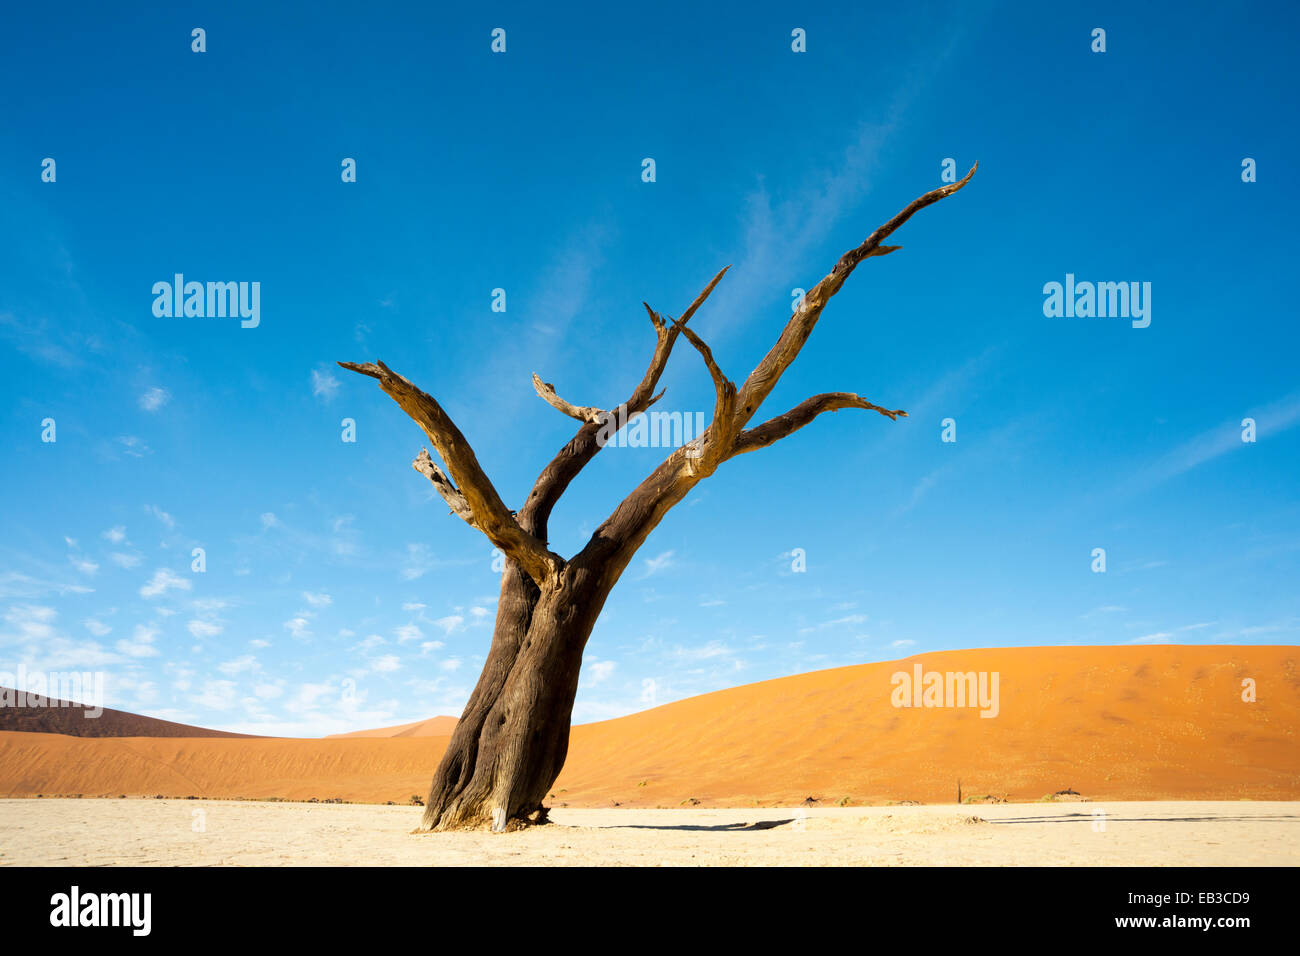 Dead Camel Thorn (Acacia erioloba) on the clay surface in the deadvlei, Namibia. - Stock Image